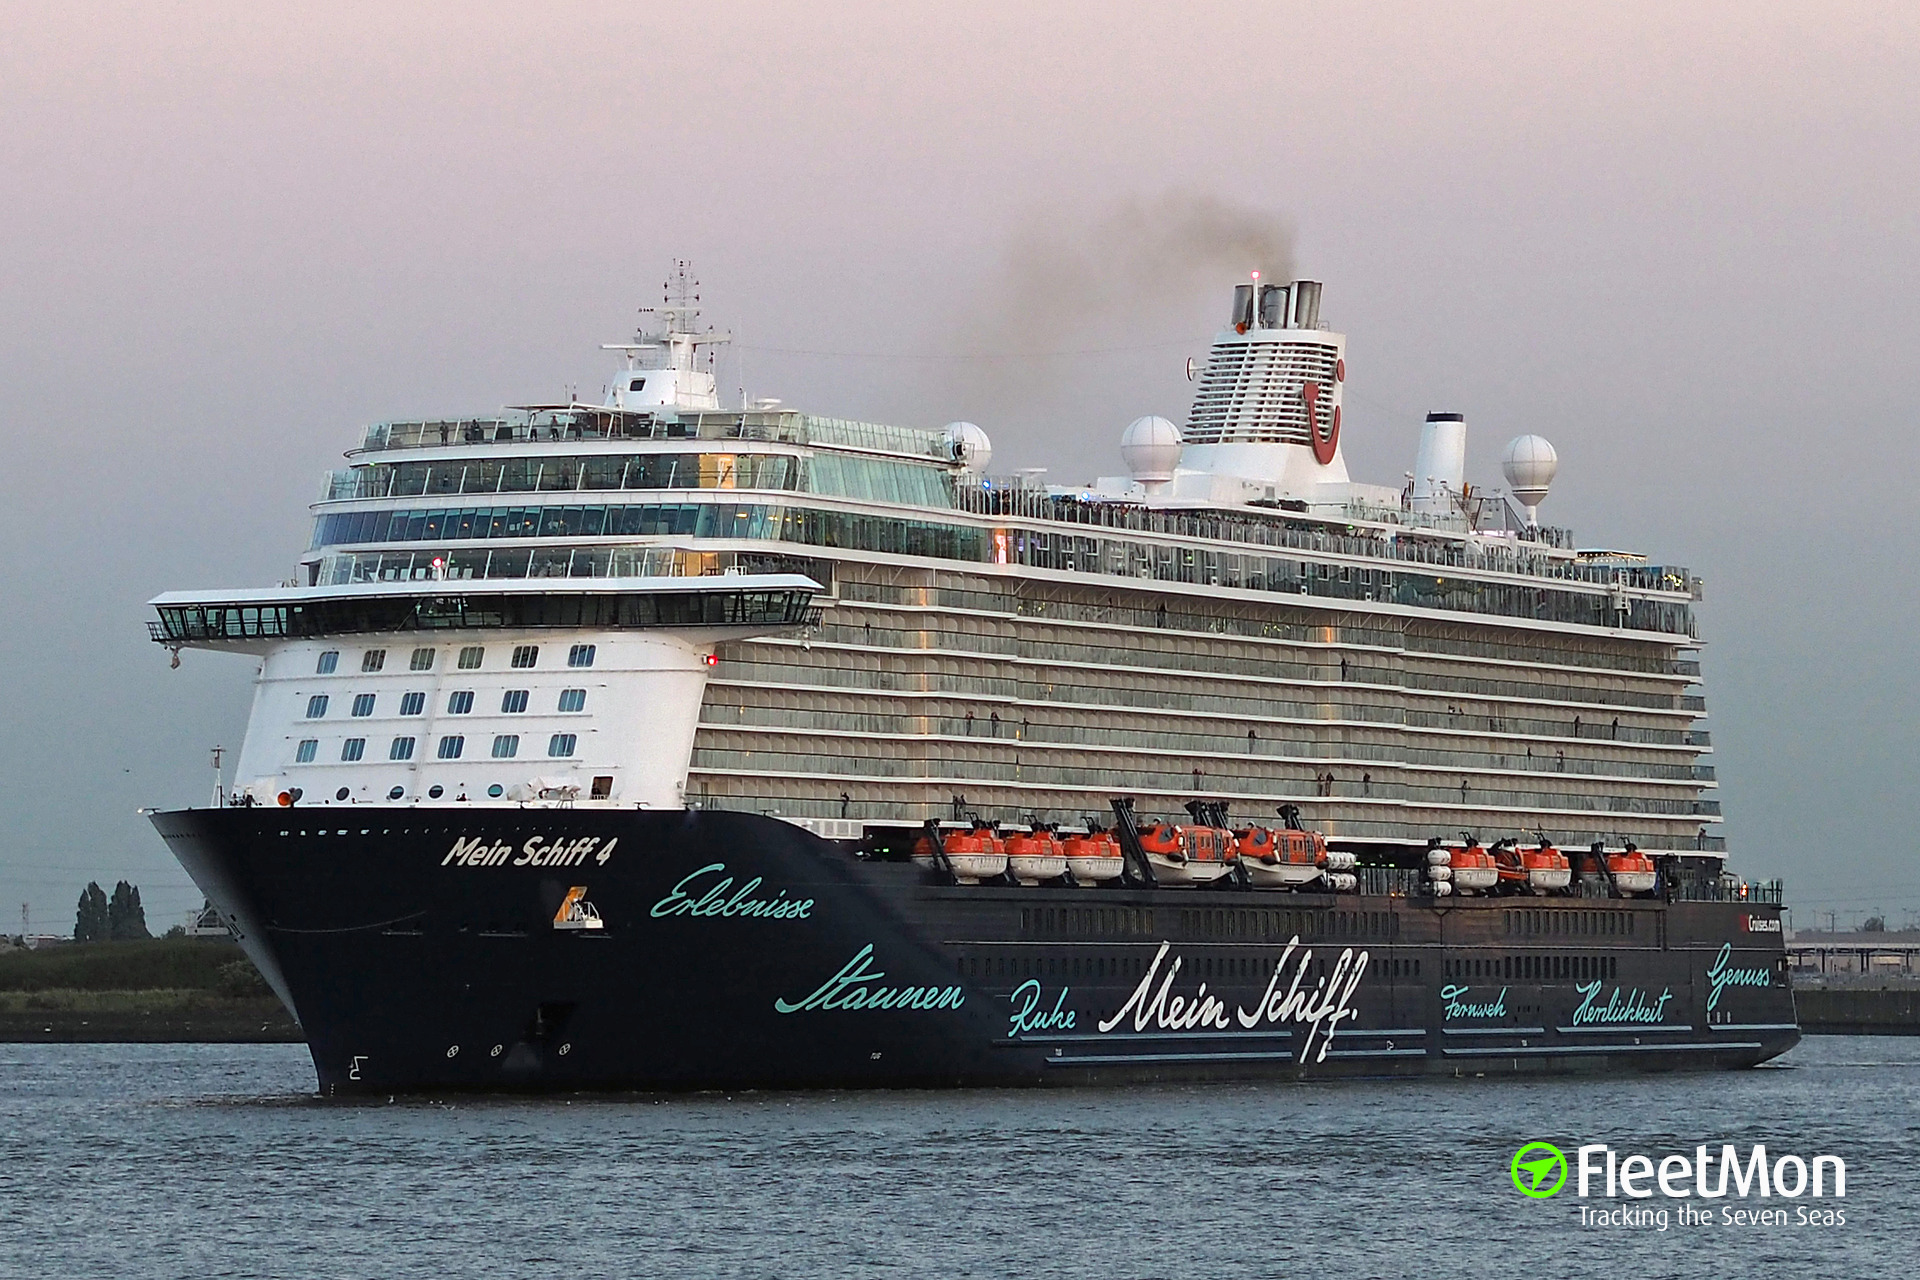 Gps Fleet Tracking Pricing >> MEIN SCHIFF 4 (Passenger ship) IMO 9678408